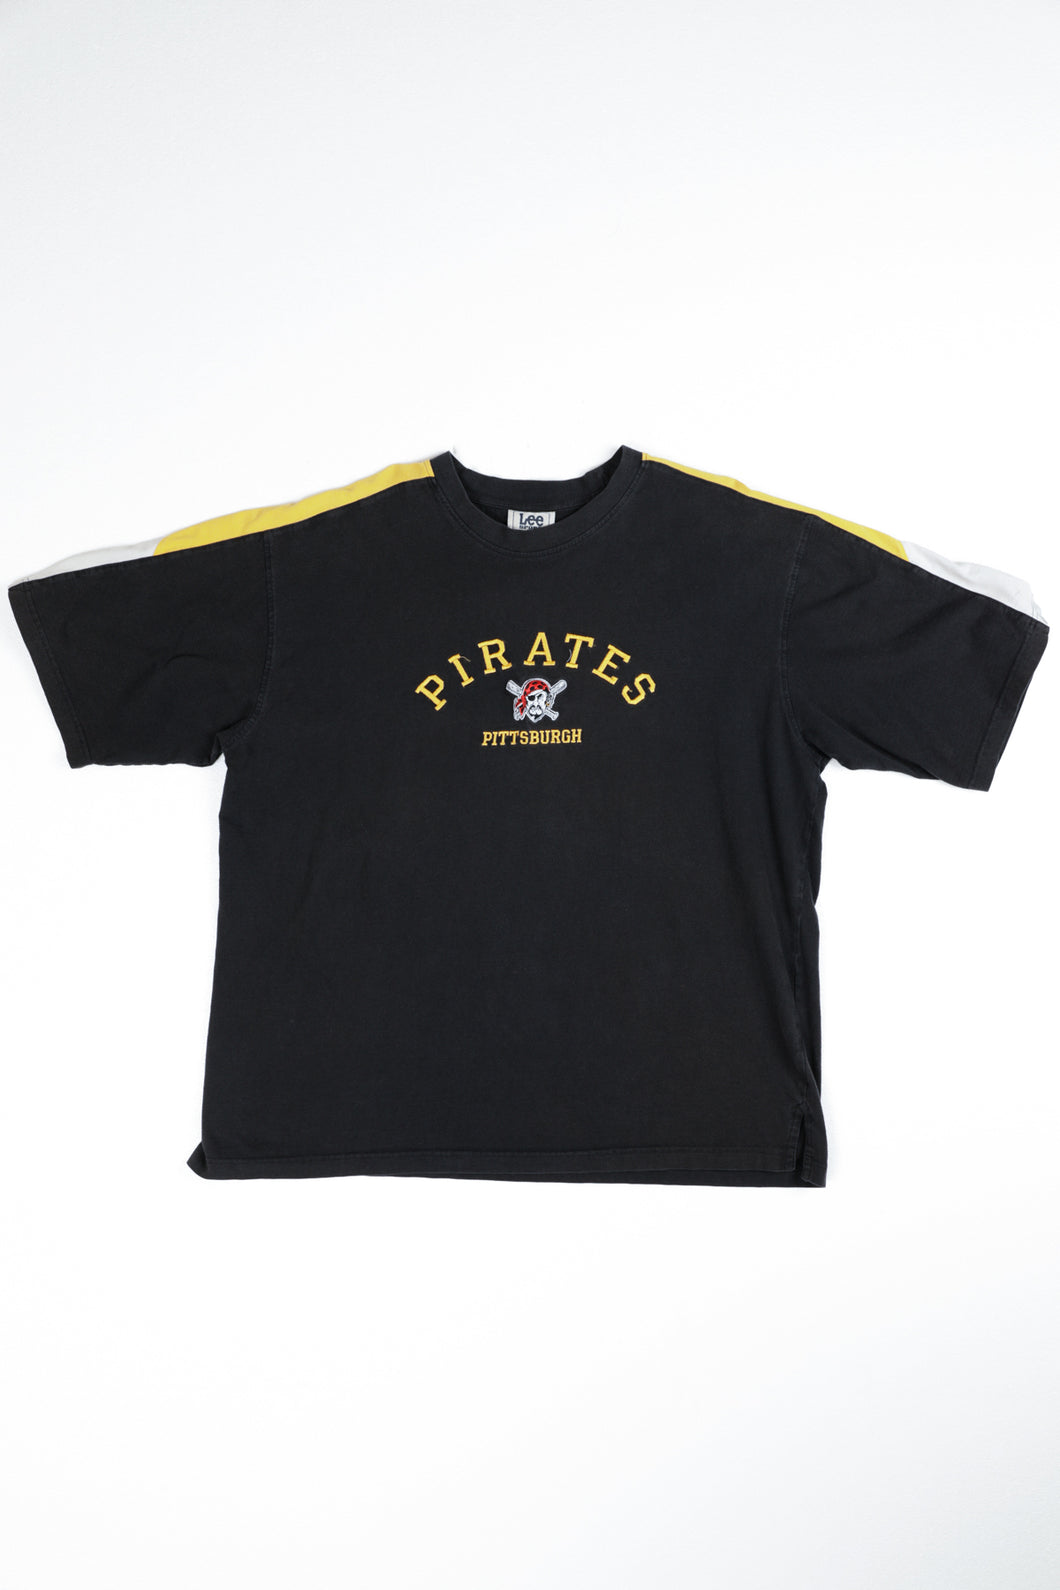 Pittsburgh Pirates Tee